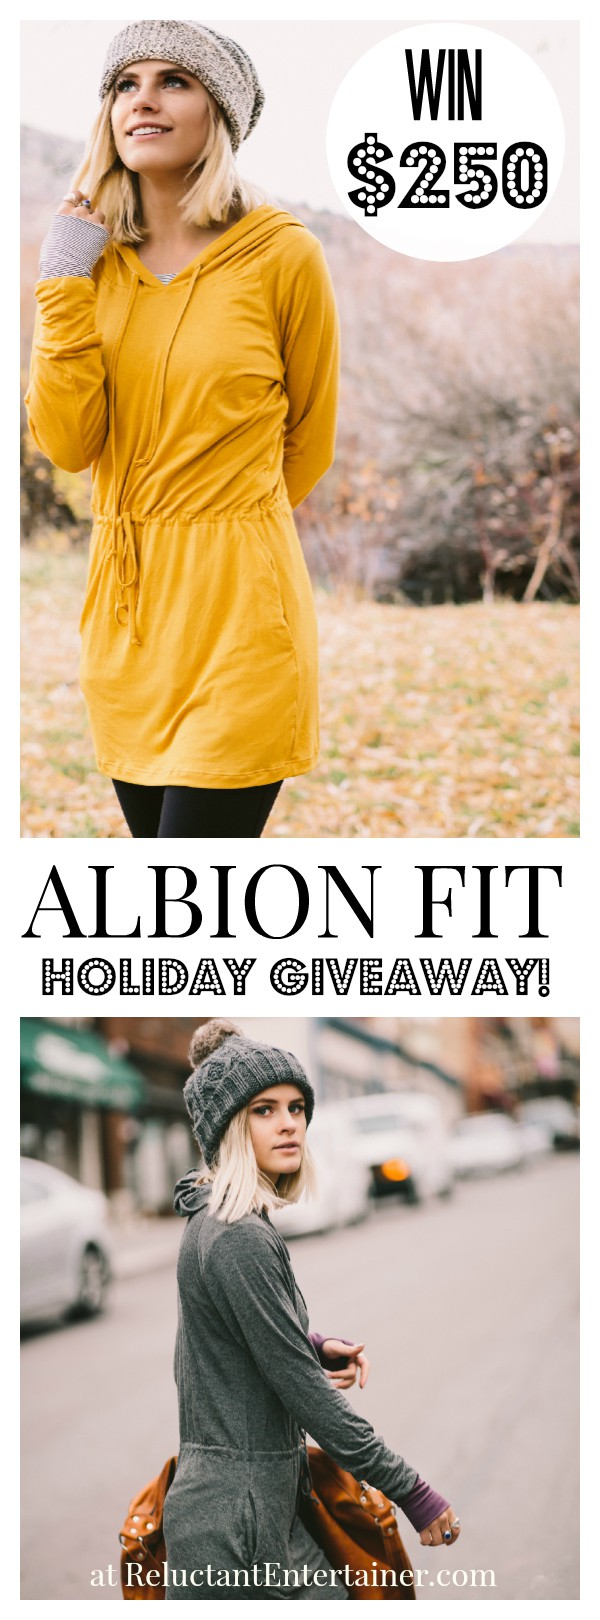 Albion Fit Holiday Gift